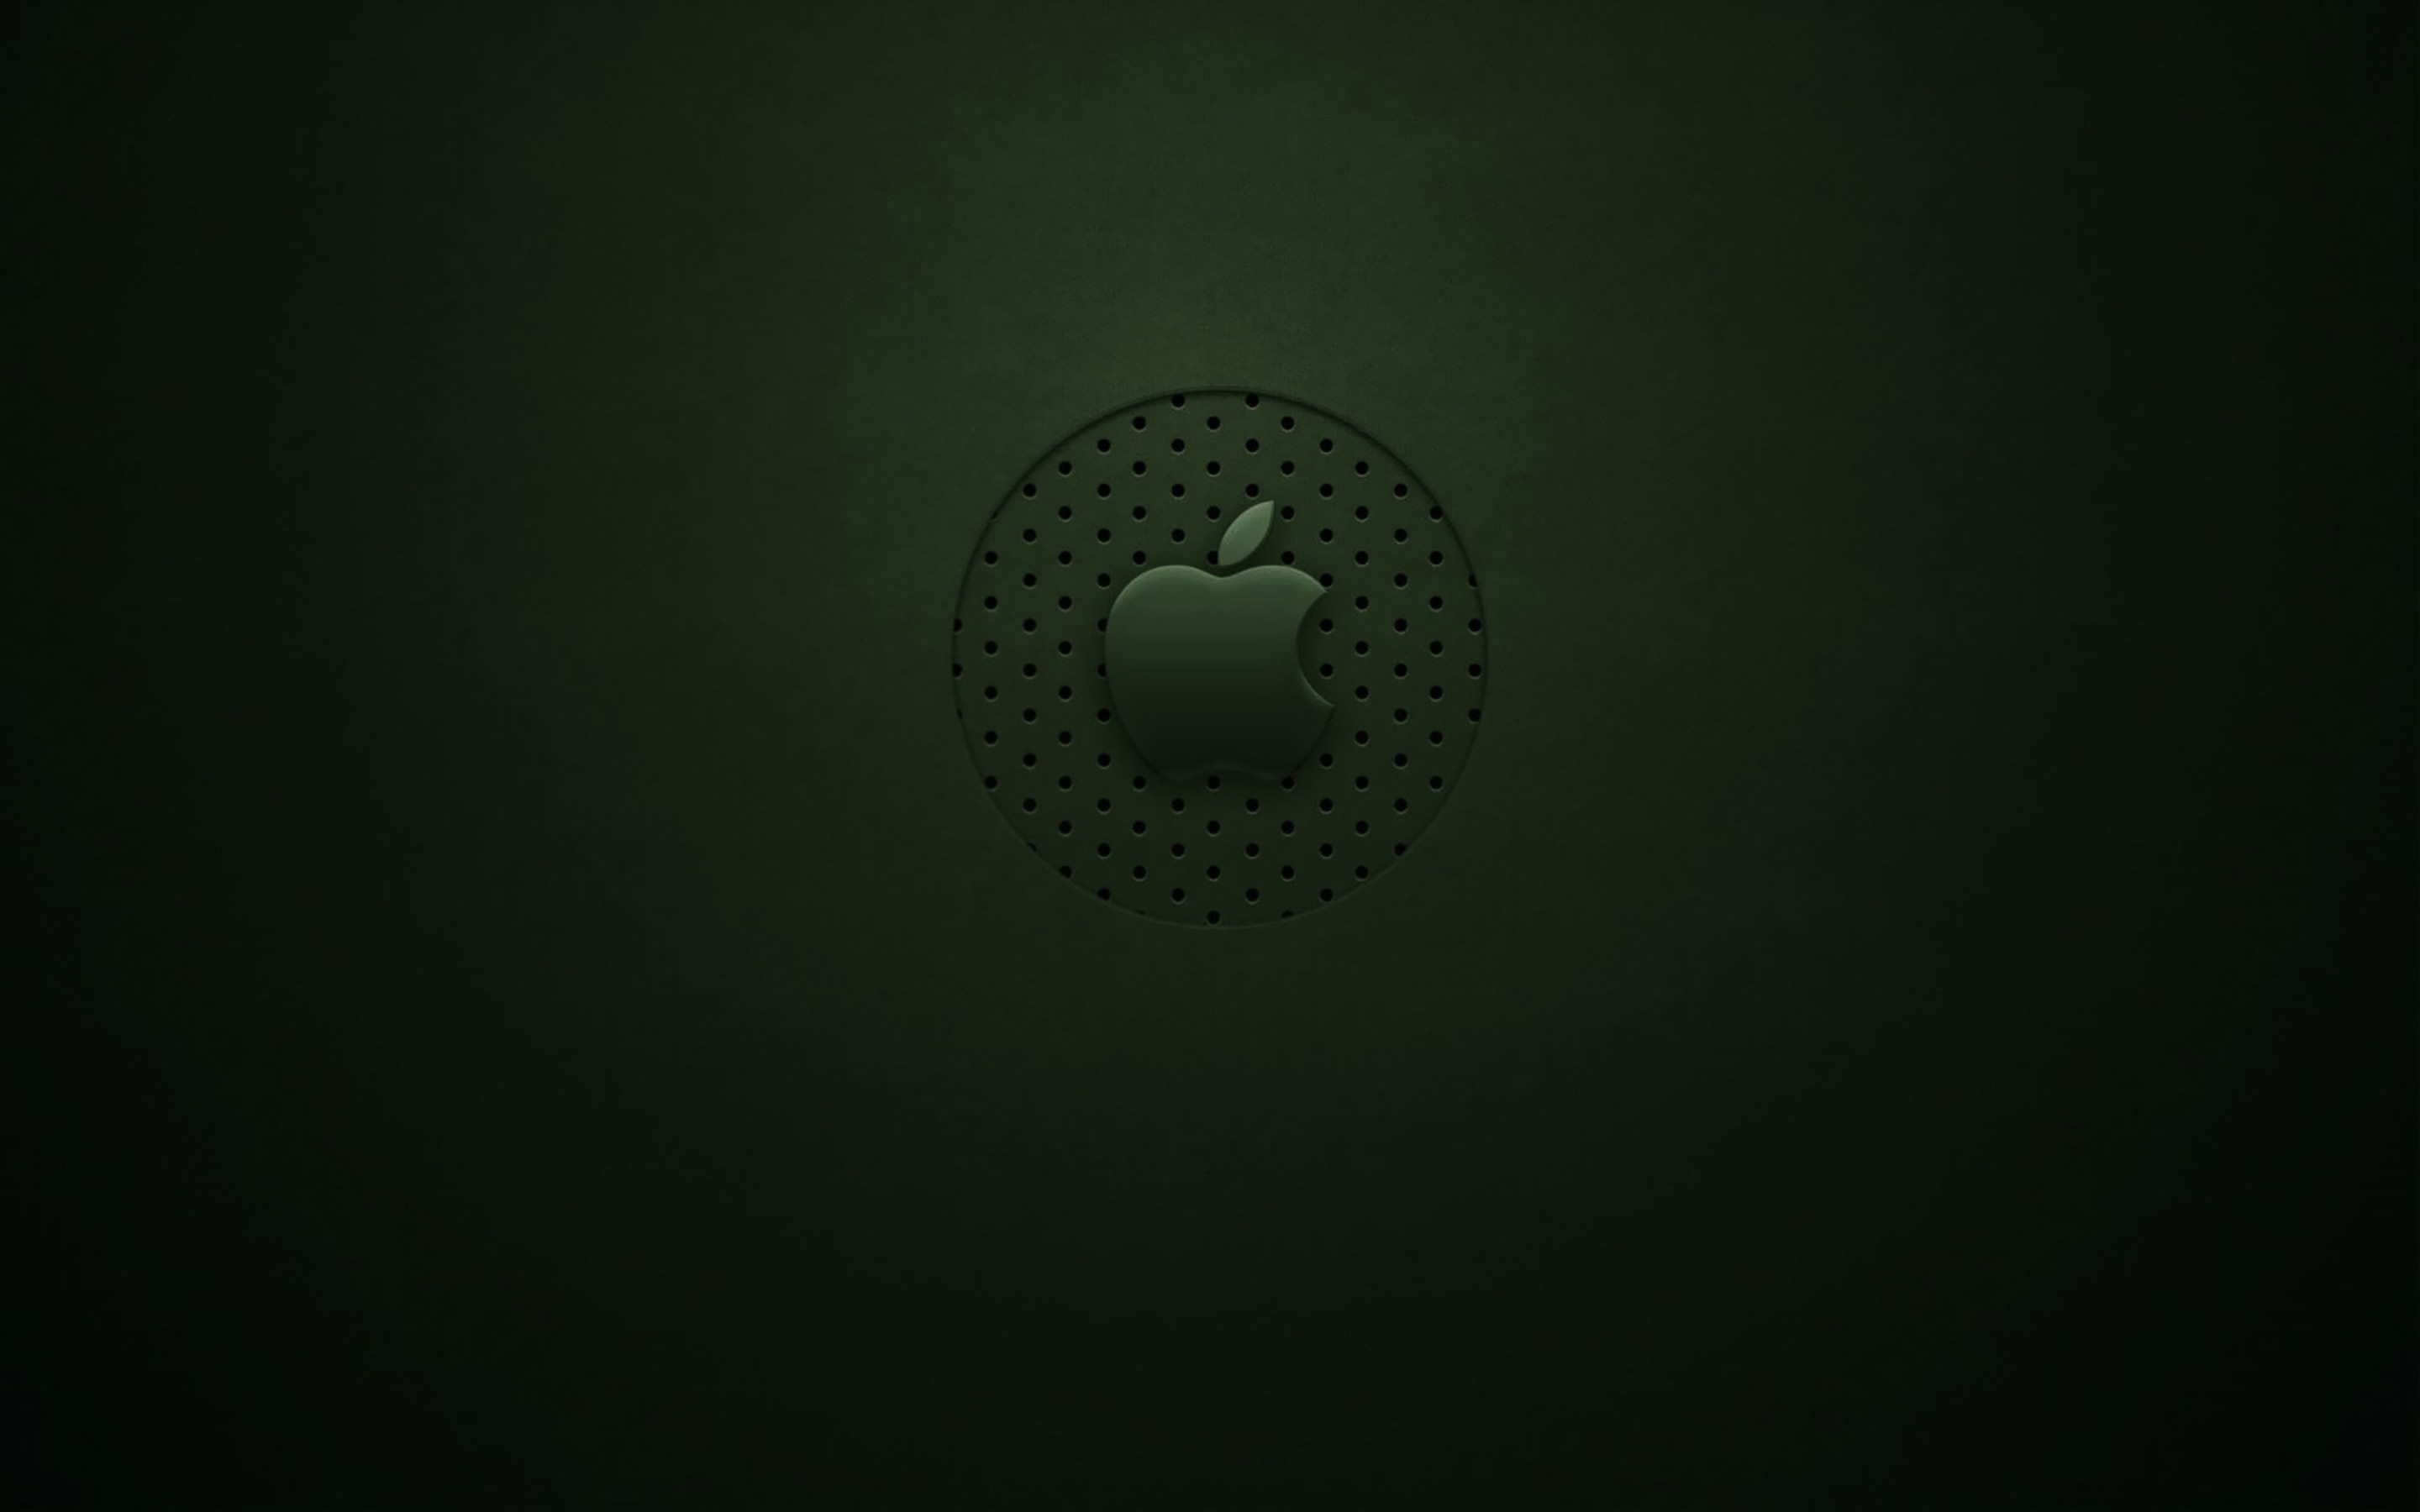 Apple Logo Mac Wallpaper Download Mac Wallpapers Download 2880x1800